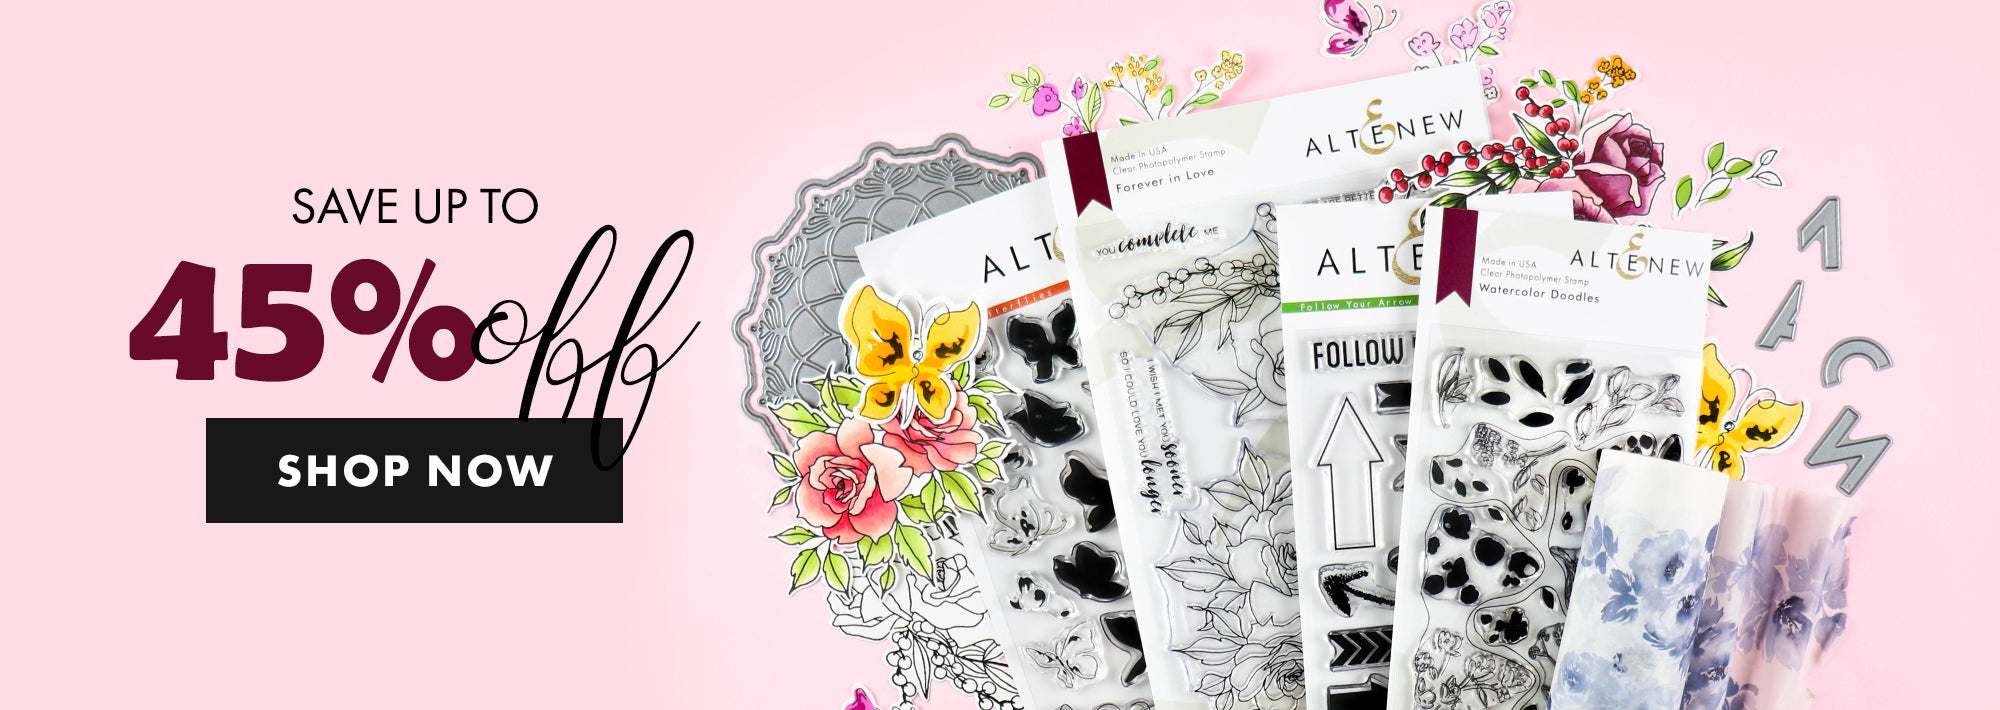 Save up to 45% off on stamps, diea, inks and more